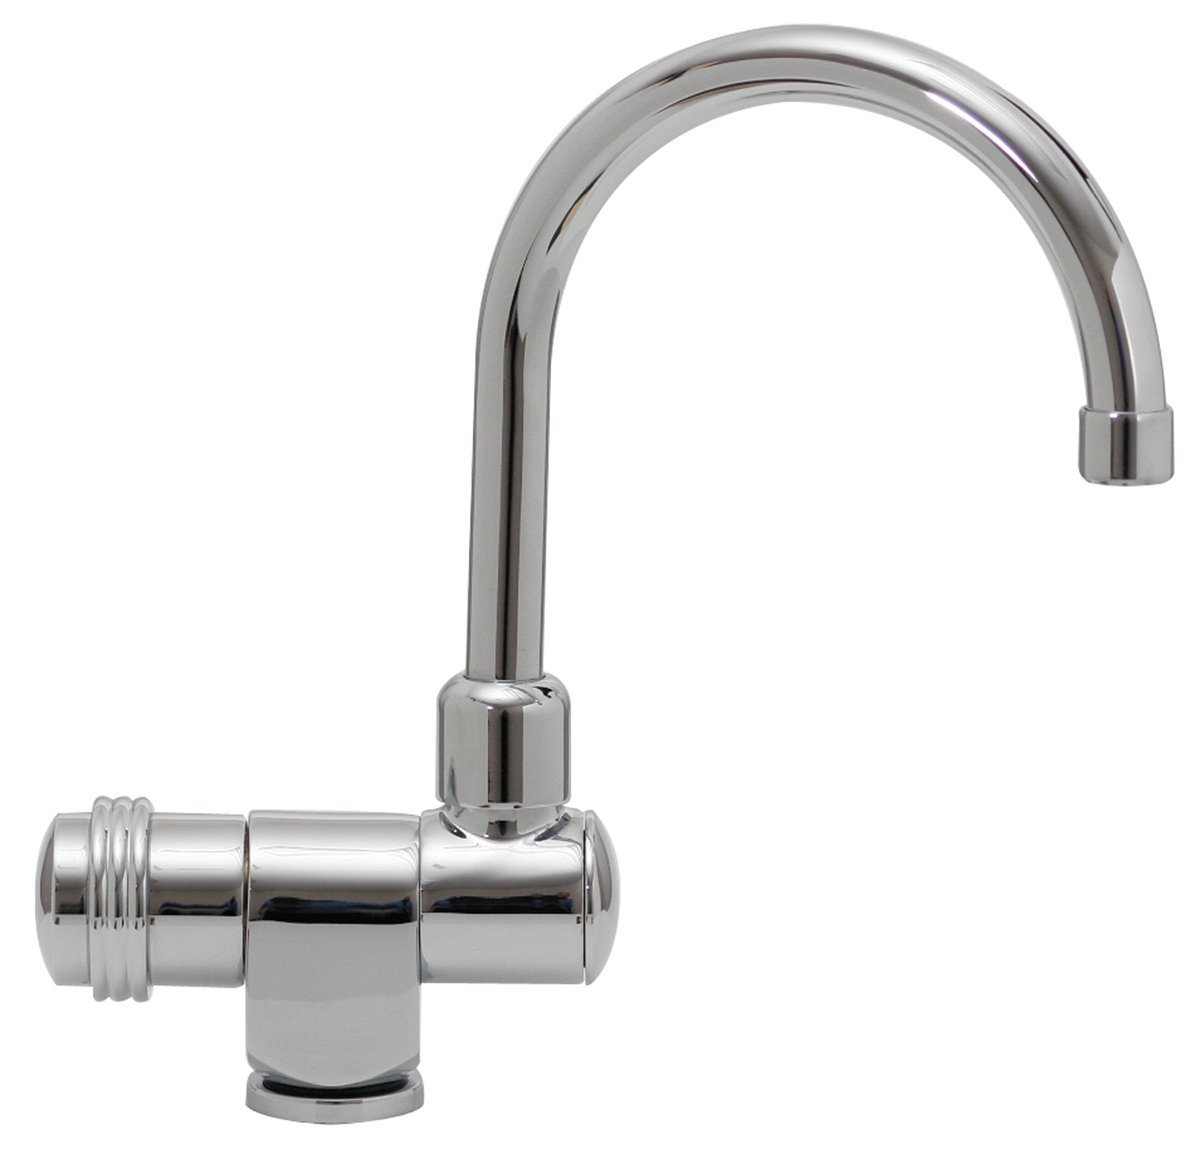 Amazon.com: ITC (97260-CP-DB) Chrome Fold-Down Faucet: Automotive